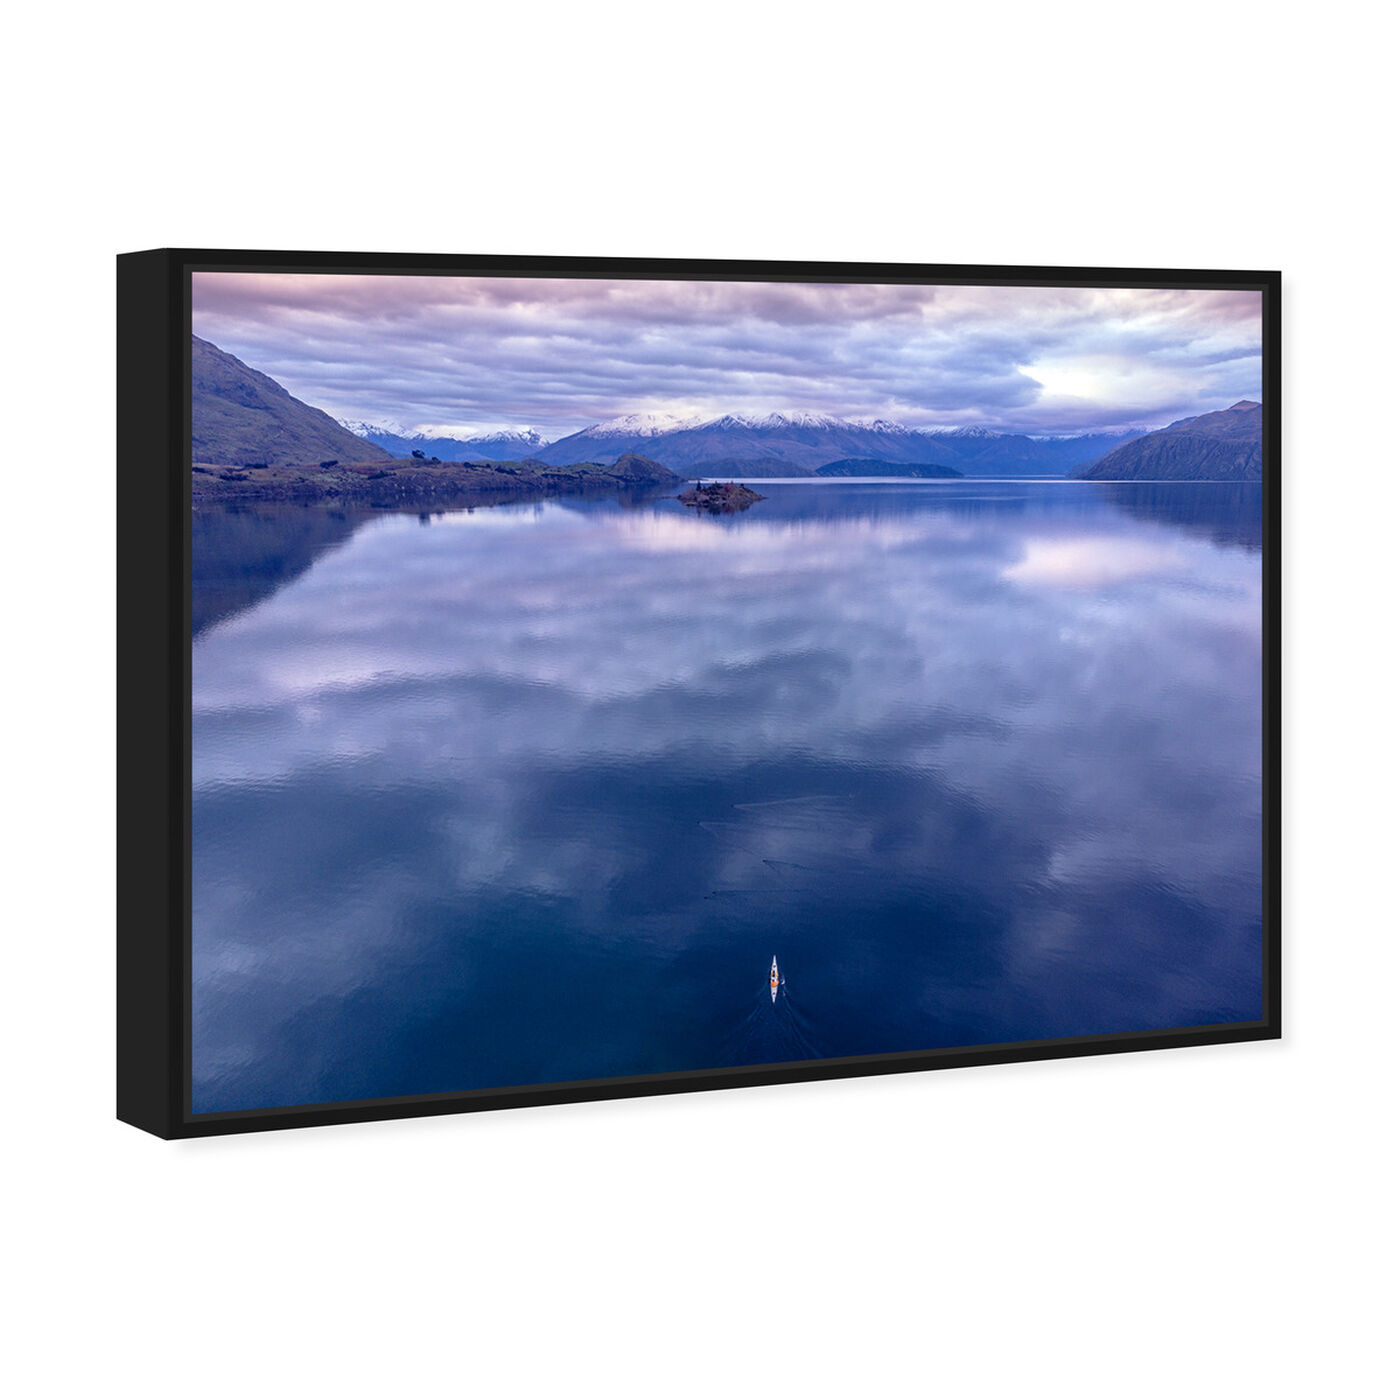 Angled view of Curro Cardenal - Rowing Breath II featuring nature and landscape and mountains art.